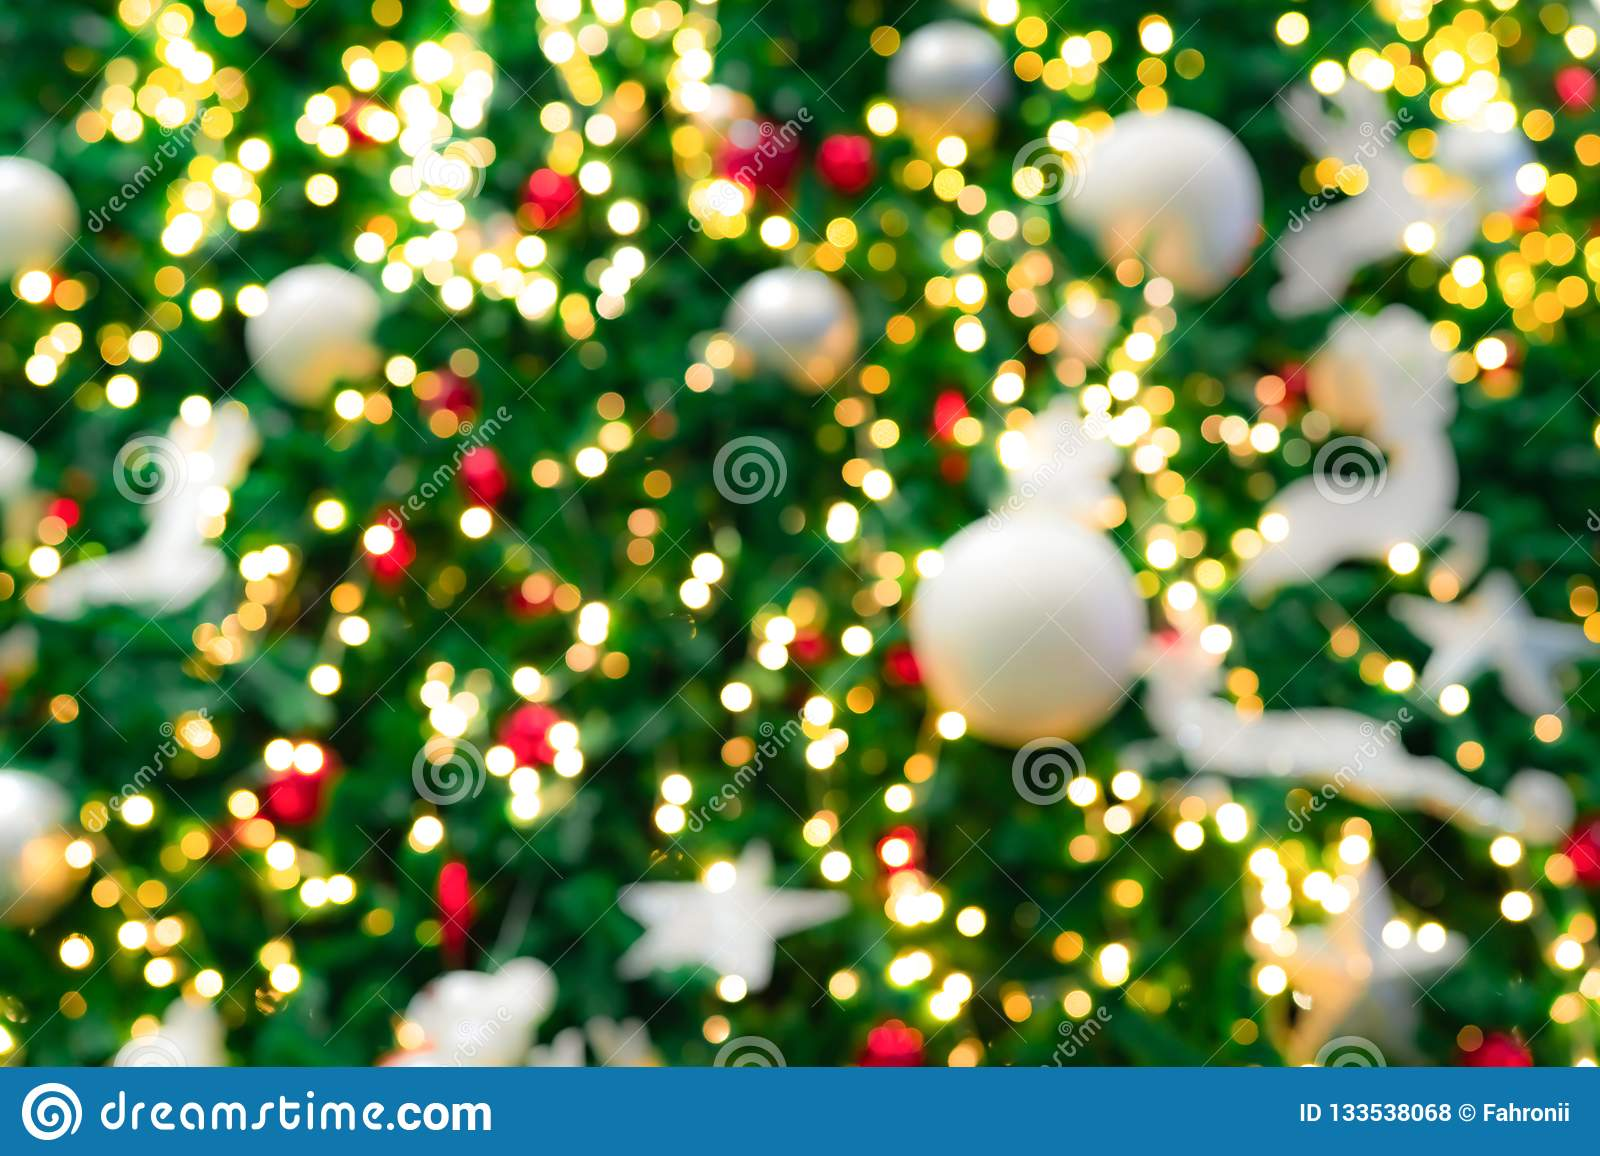 blurred red green and gold bokeh background of christmas tree xmas background